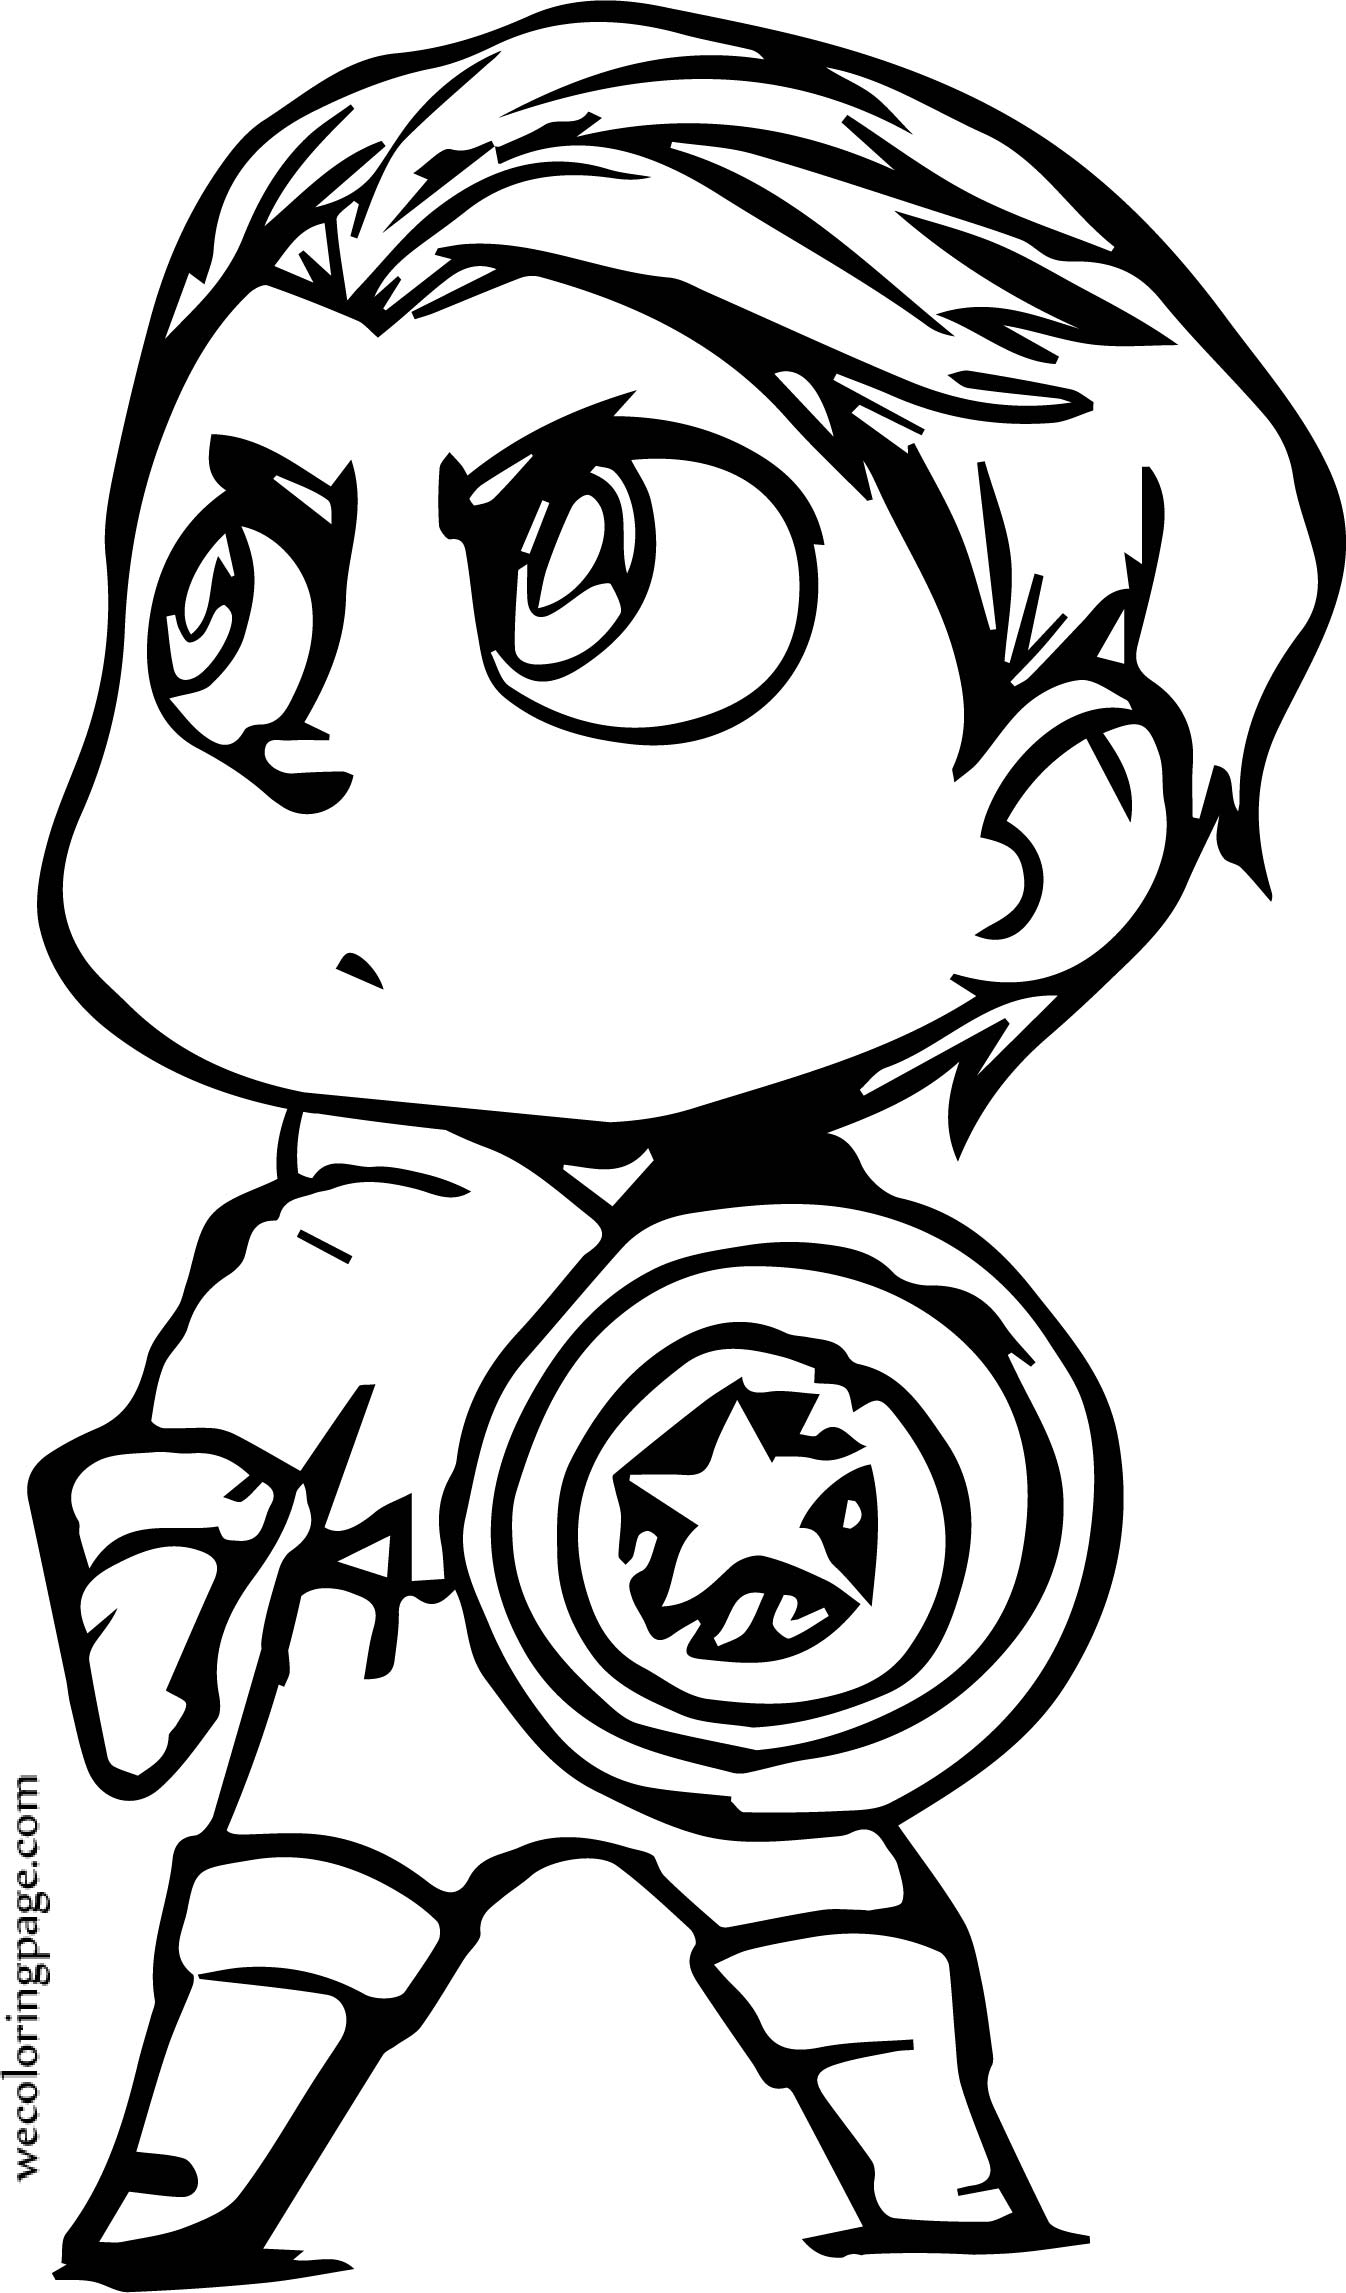 baby captain america coloring pages - photo#15